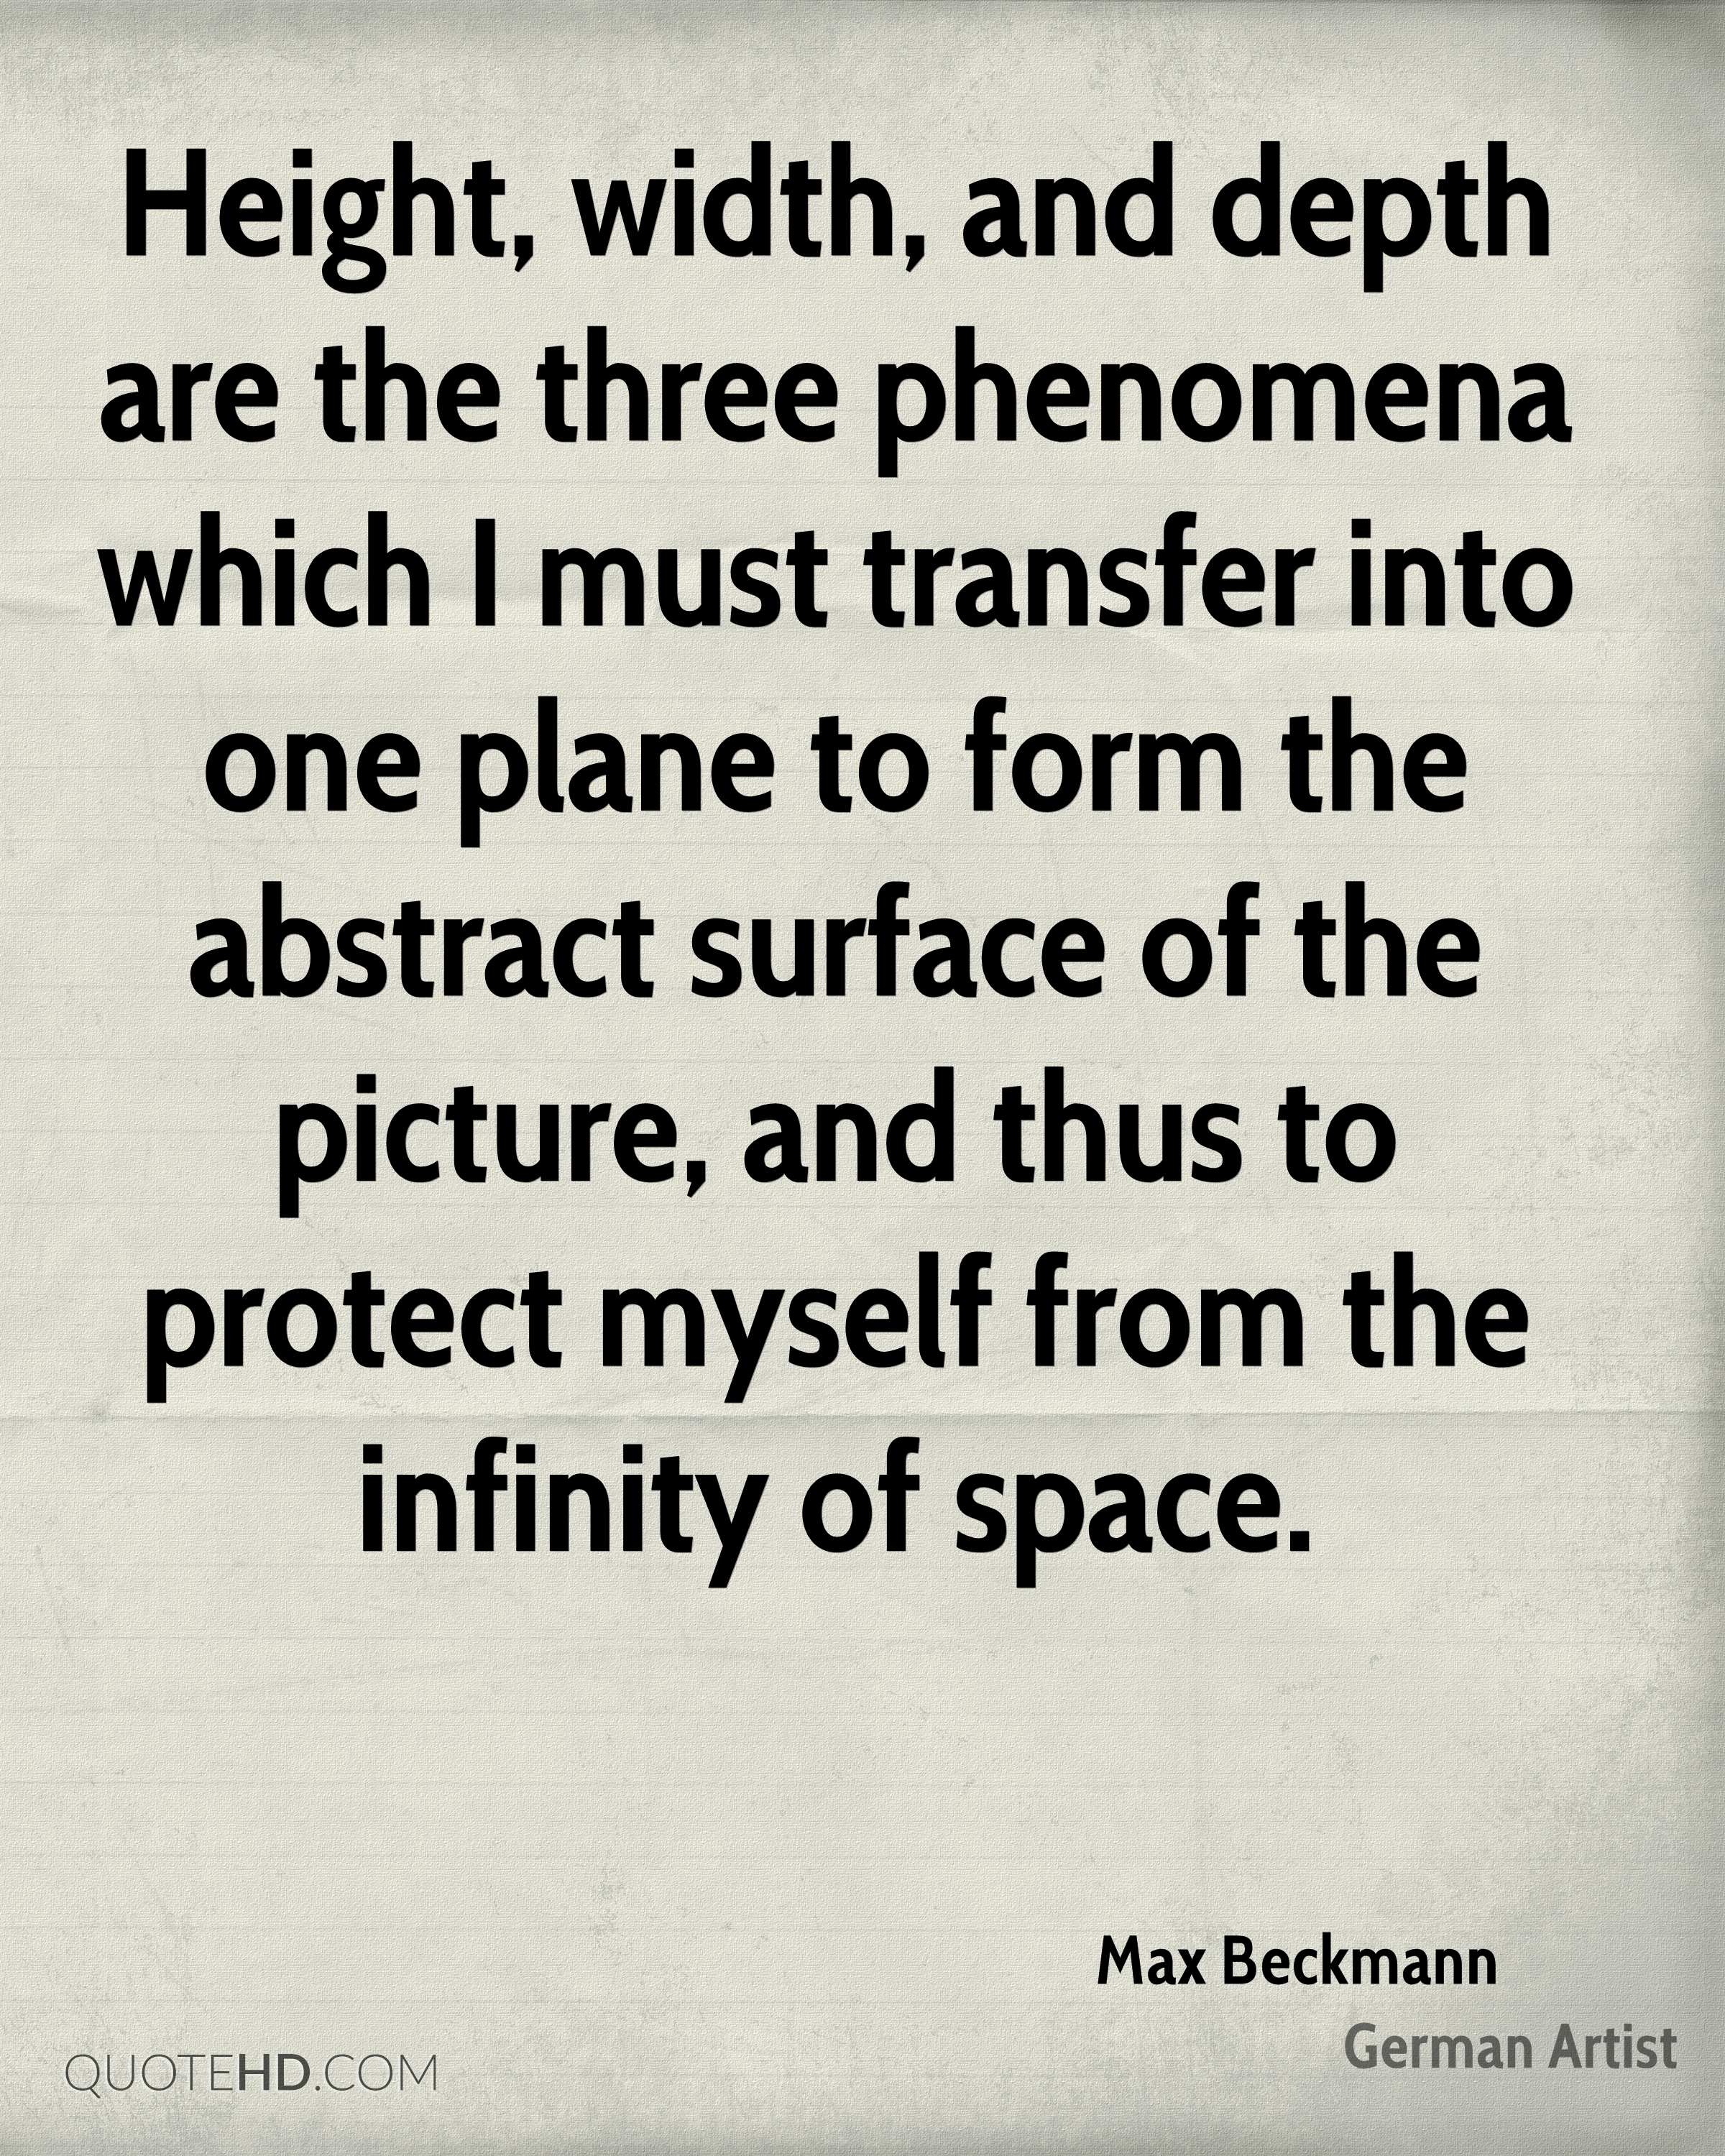 Height, width, and depth are the three phenomena which I must transfer into one plane to form the abstract surface of the picture, and thus to protect myself from the infinity of space.